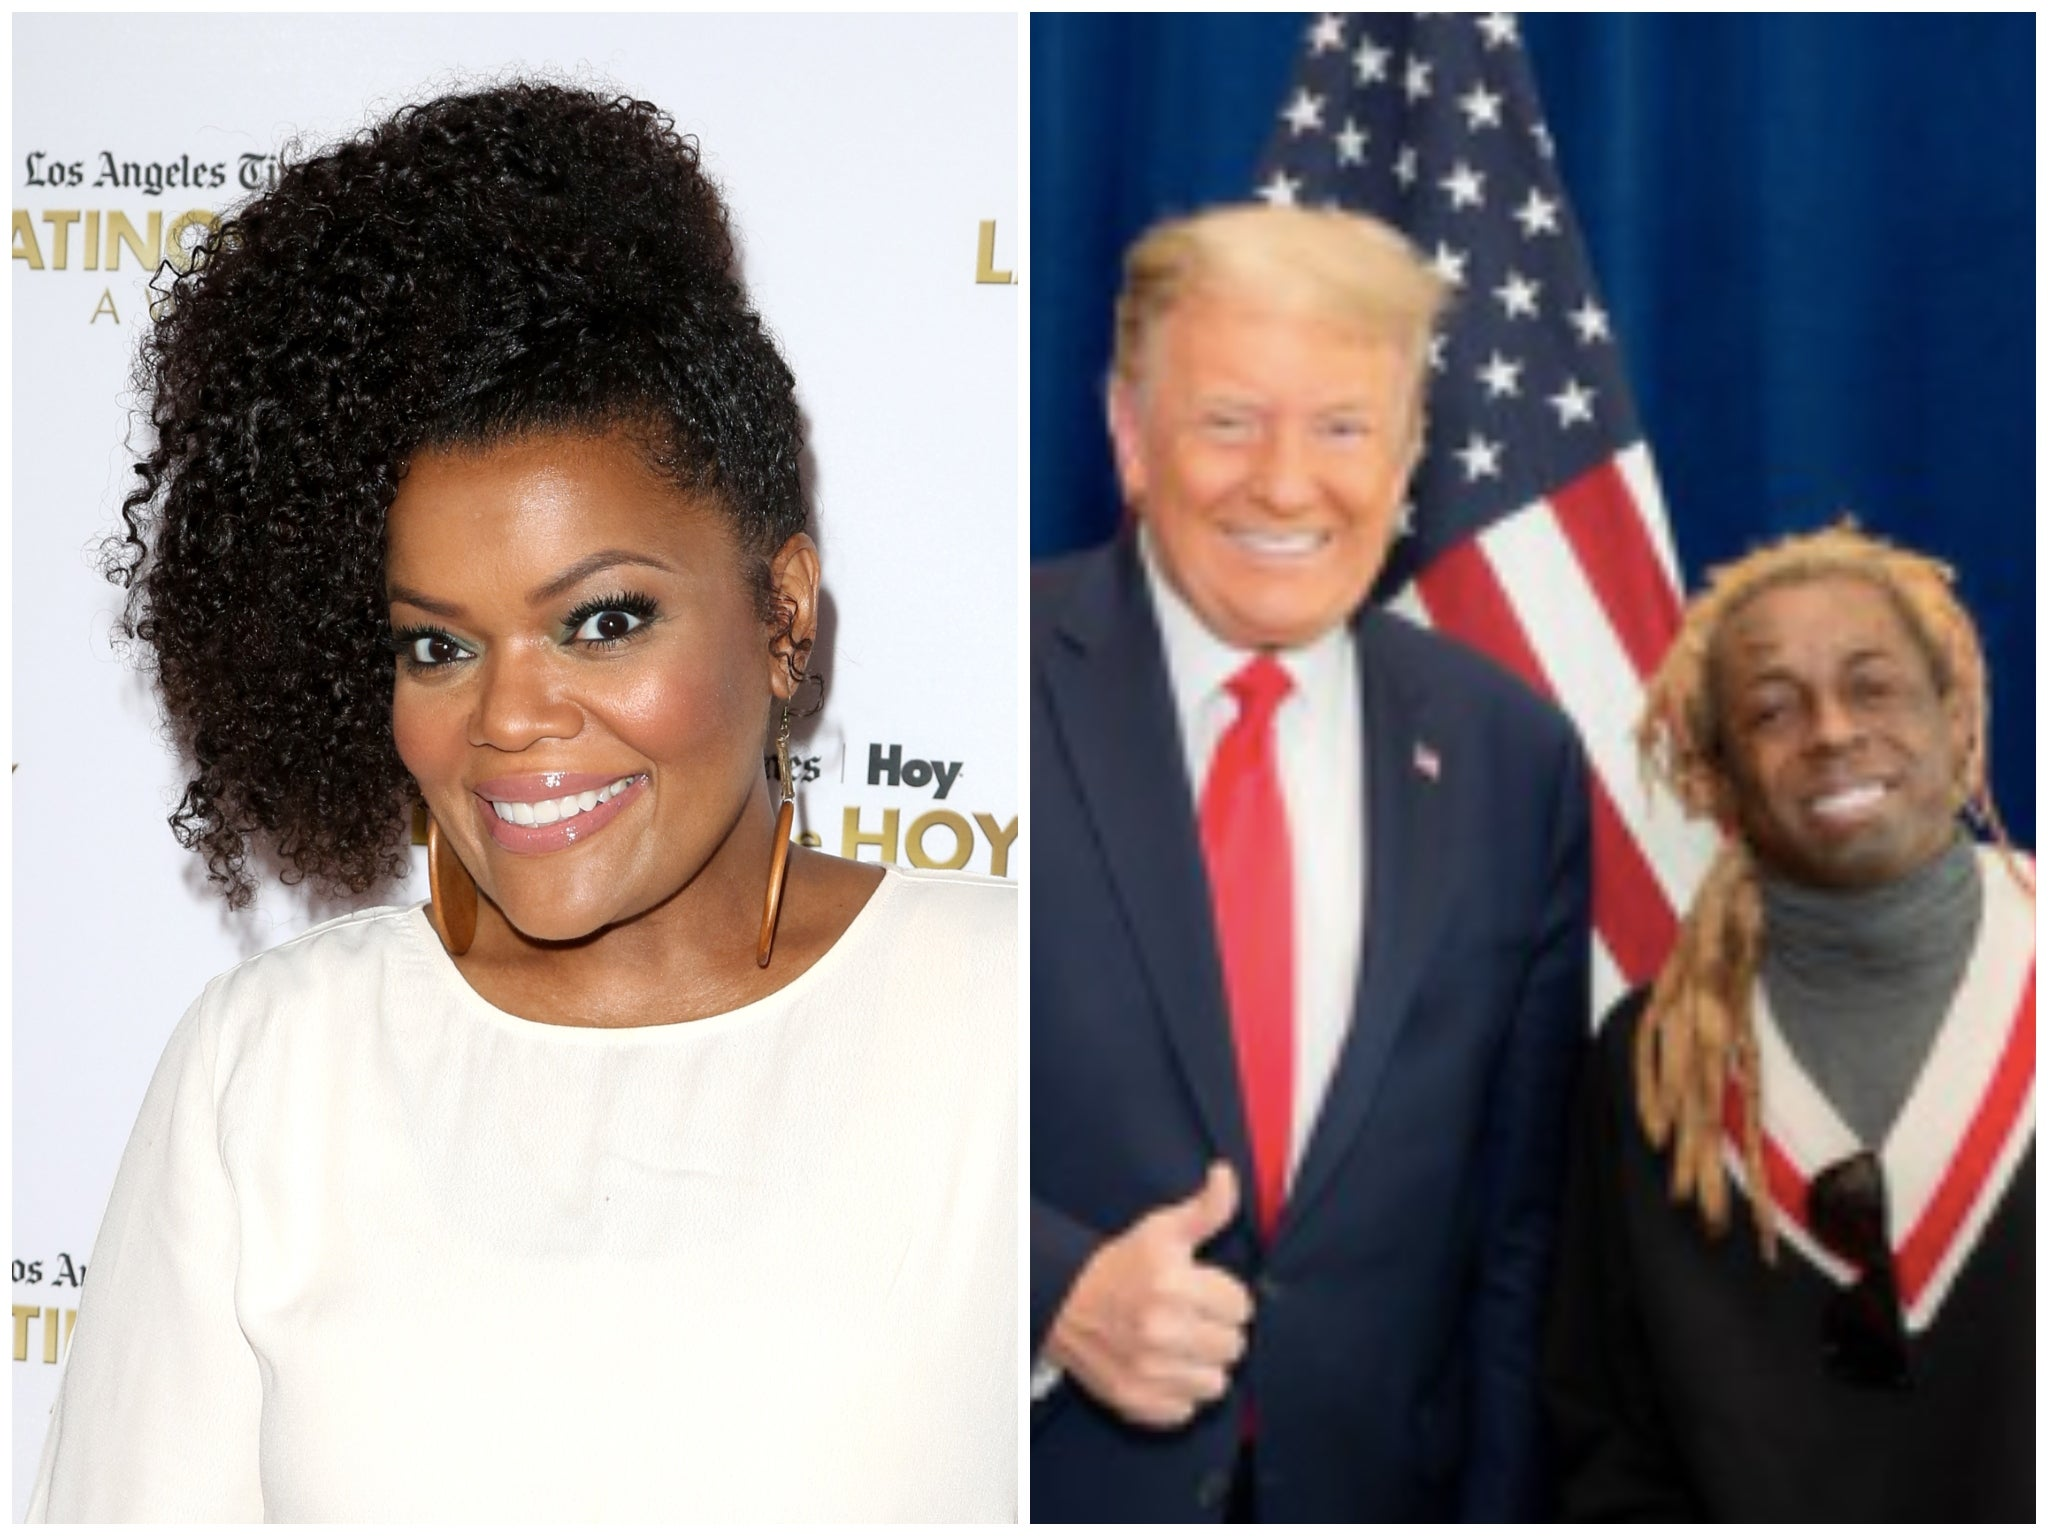 Lil Wayne: Community star Yvette Nicole Brown calls out rapper for posting photo smiling alongside Trump